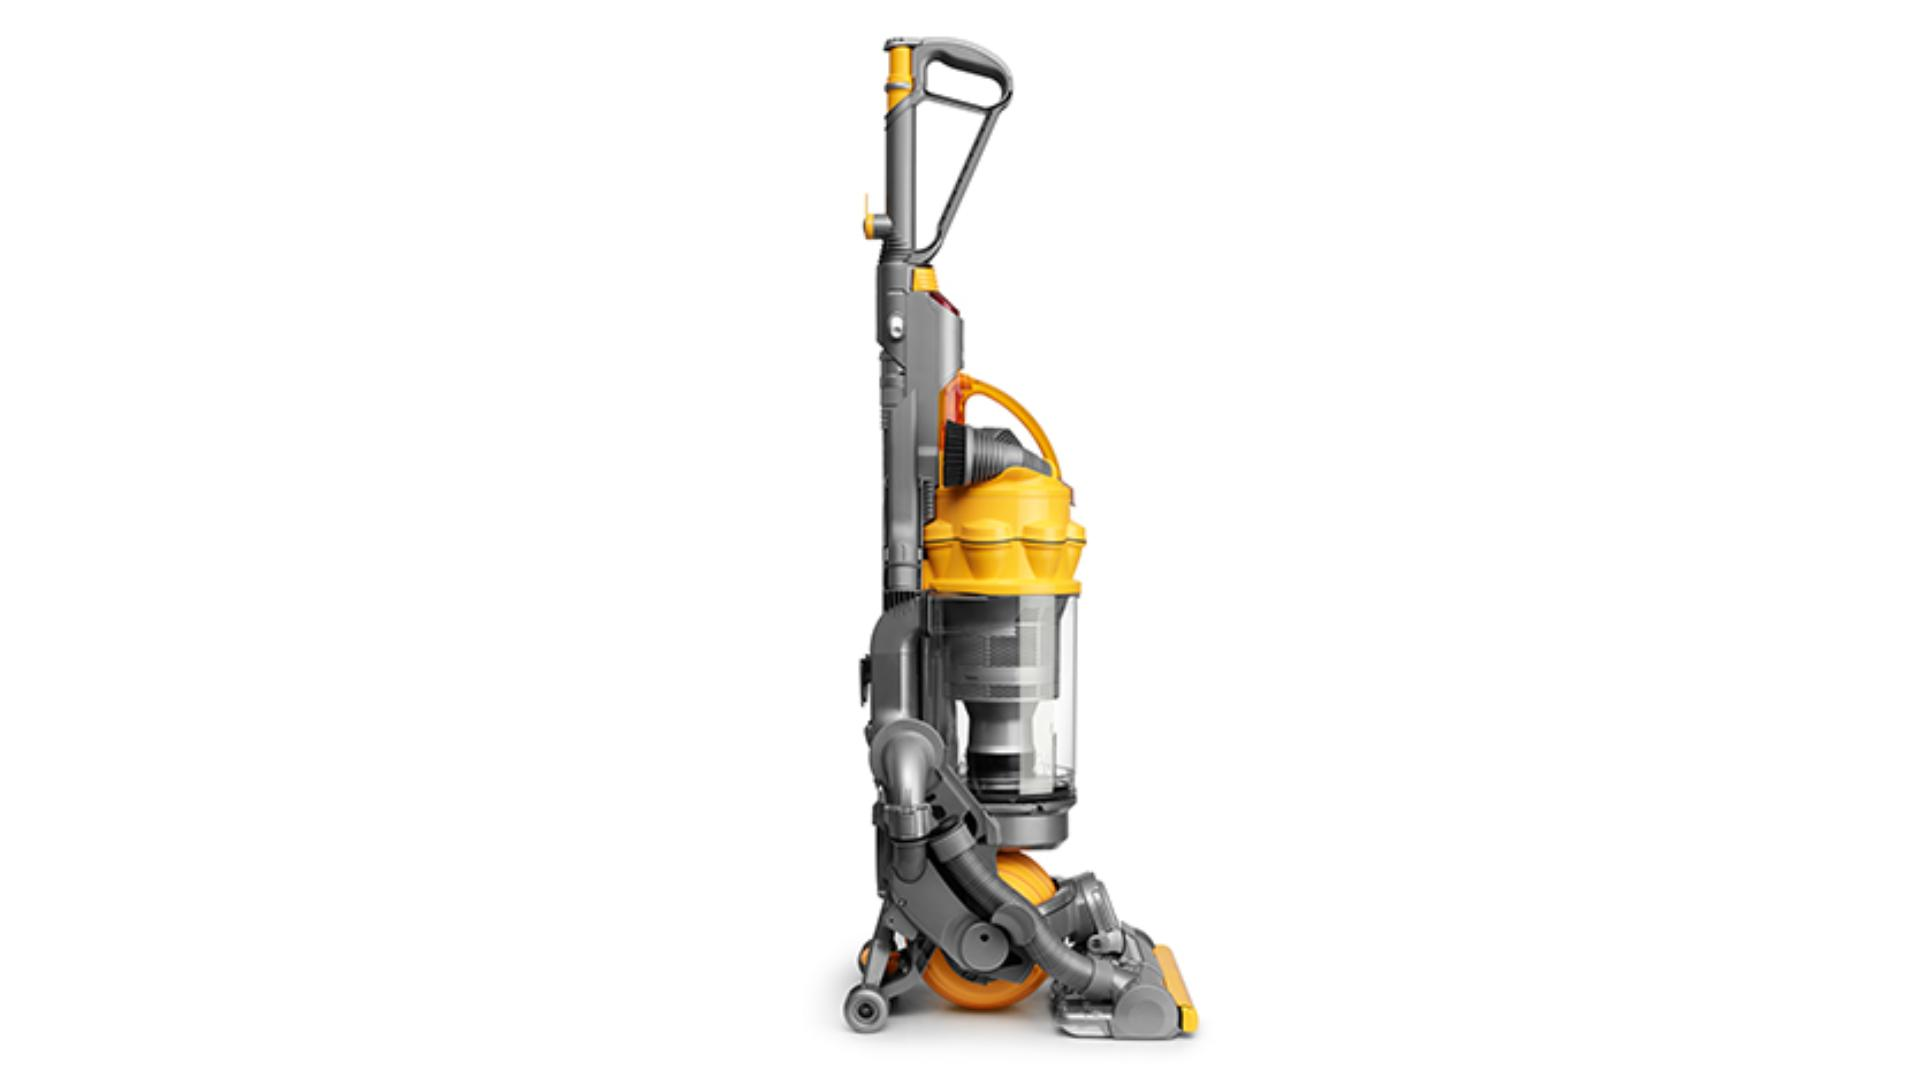 Side view of the DC15 upright vacuum